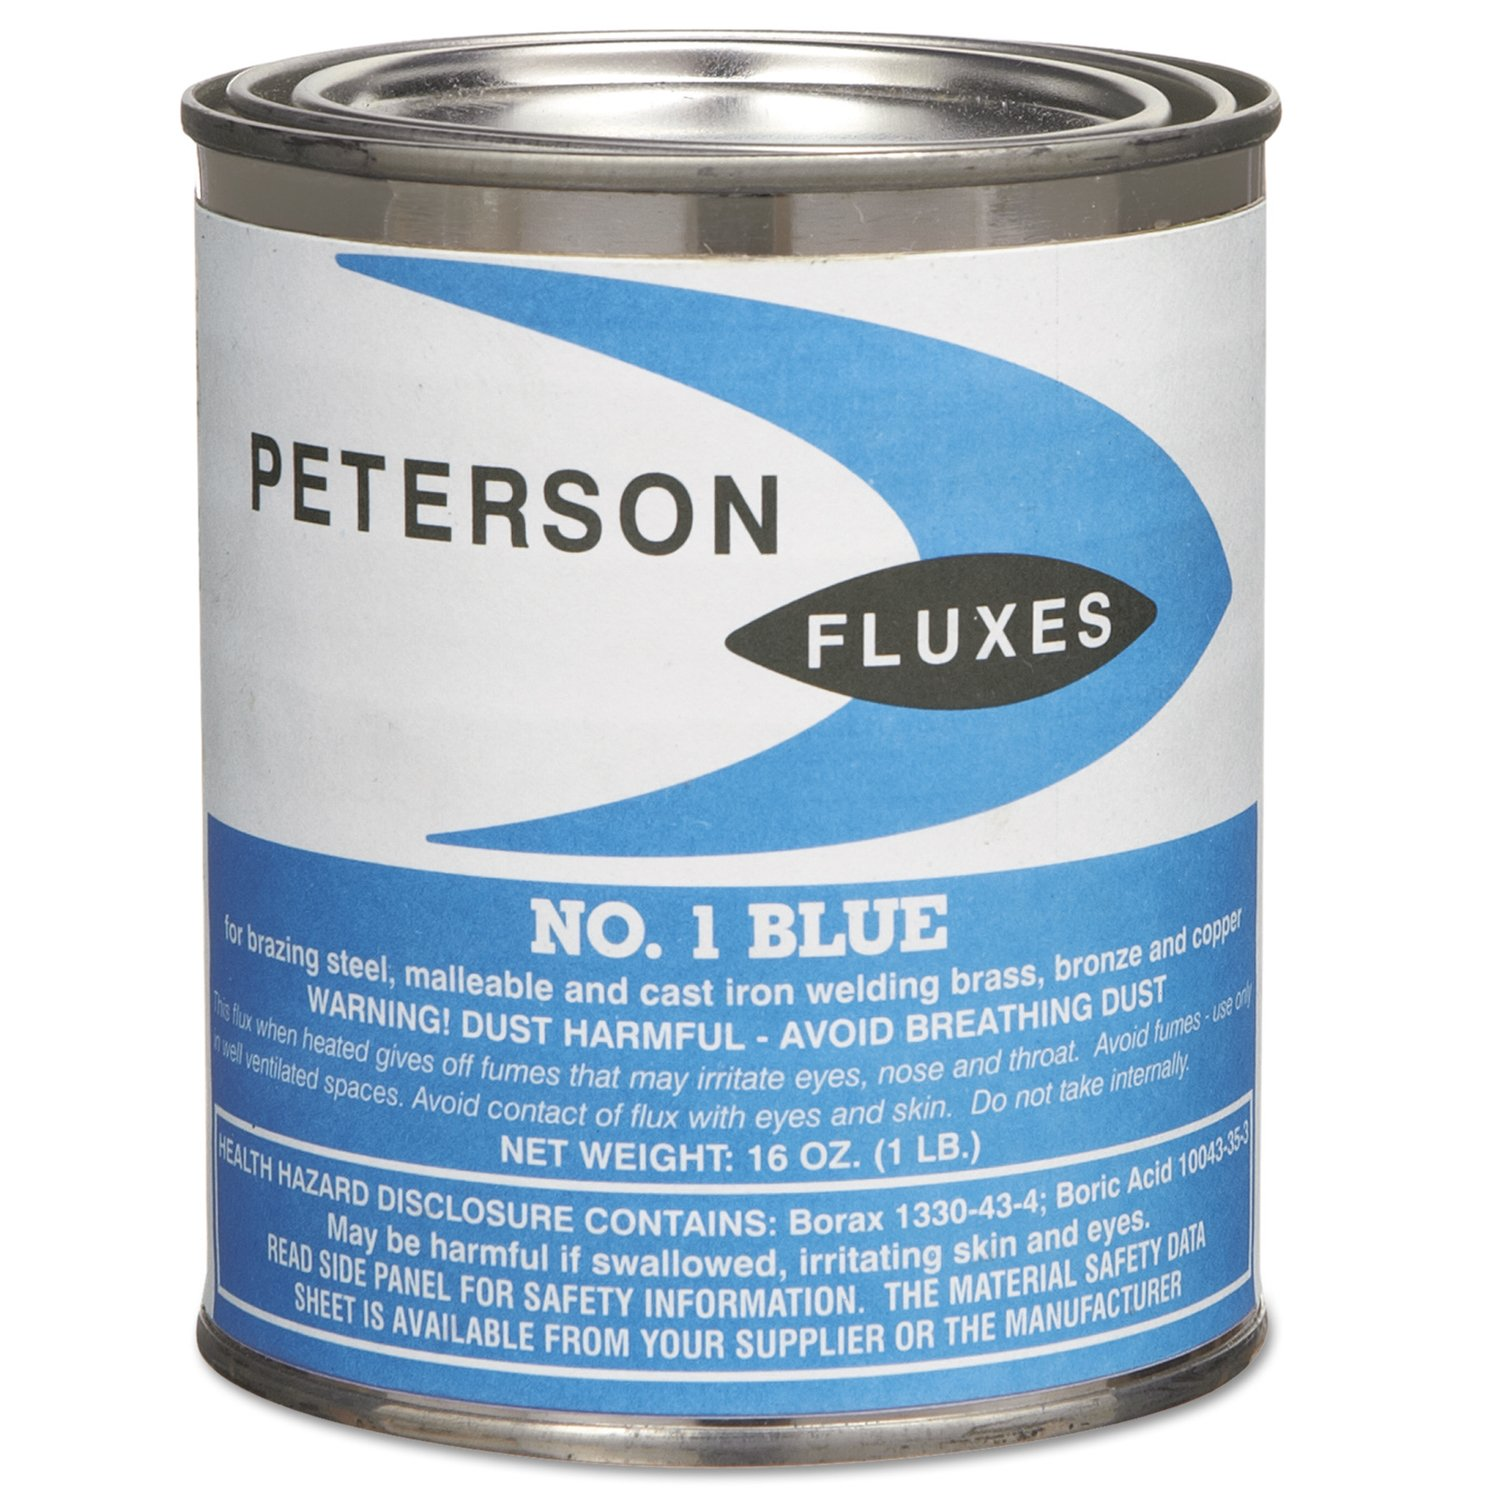 Peterson Fluxes 1 Fluxes, Powder, 1 lb. Jar, Blue Flux by Peterson Fluxes